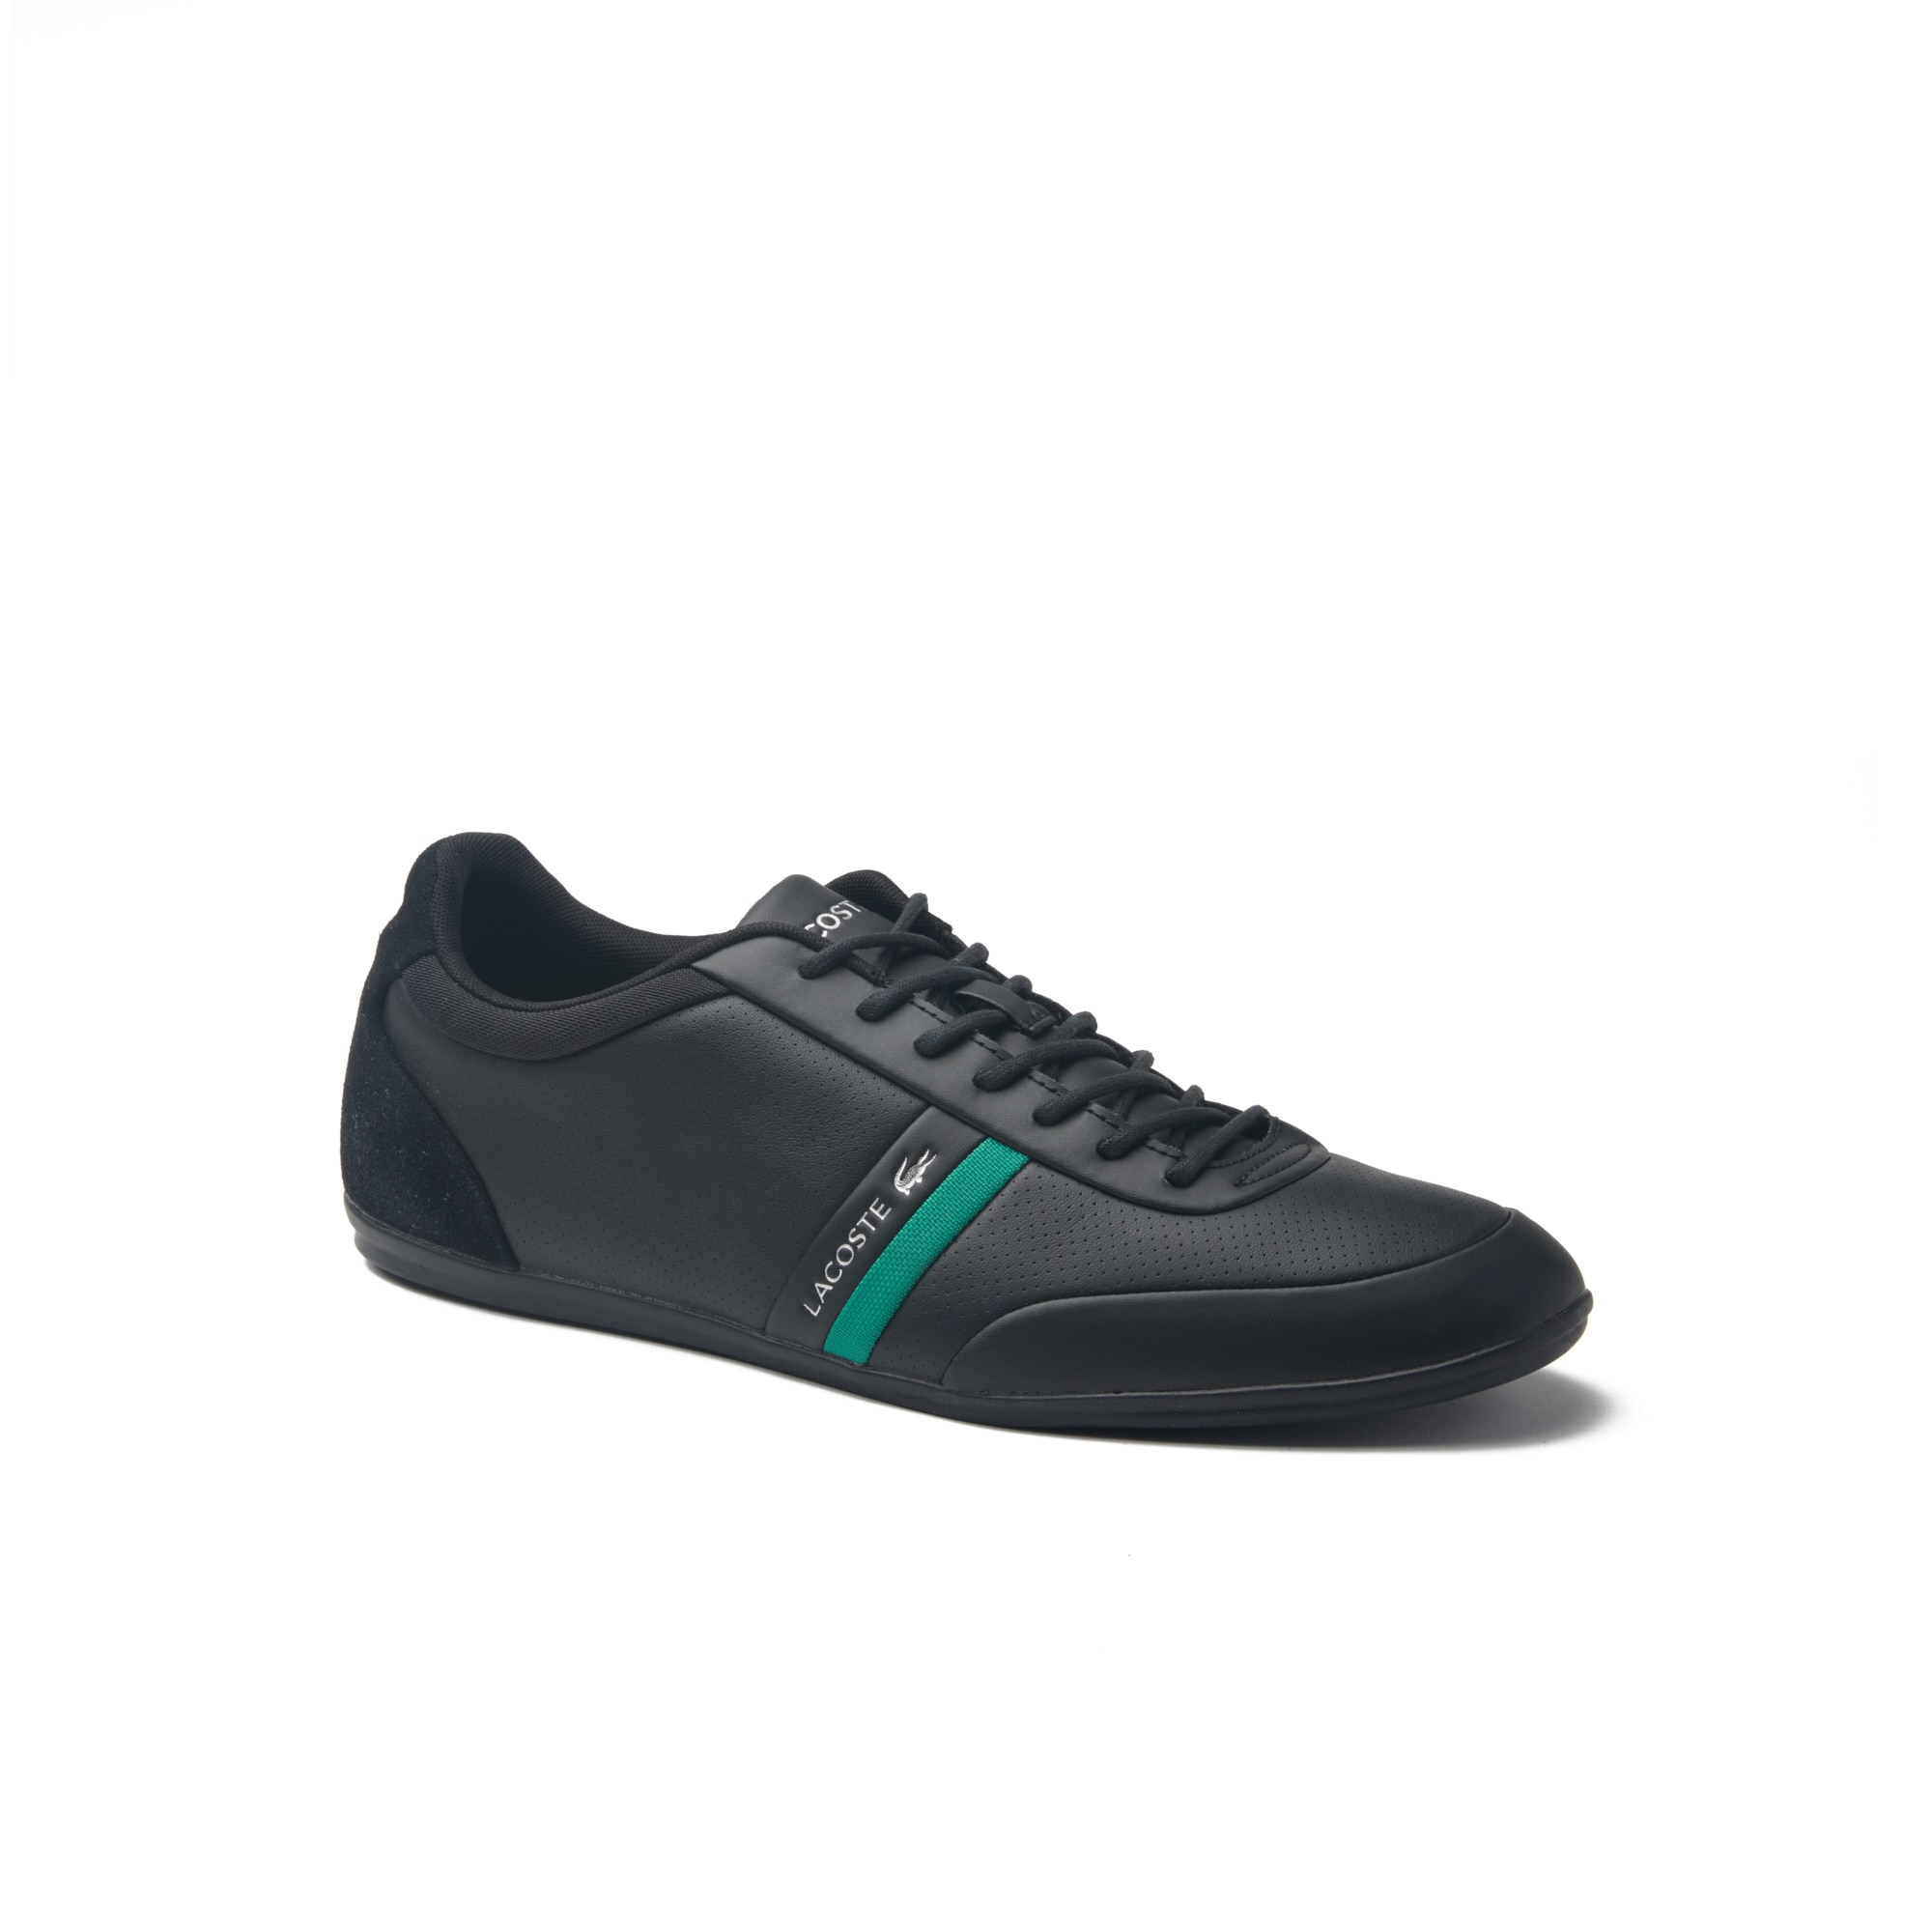 de83335a0d58 Men s Evara Sneaker.  125.00. BLACK GREEN  BLACK RED  NAVY OFFWHITE. + 2  colors